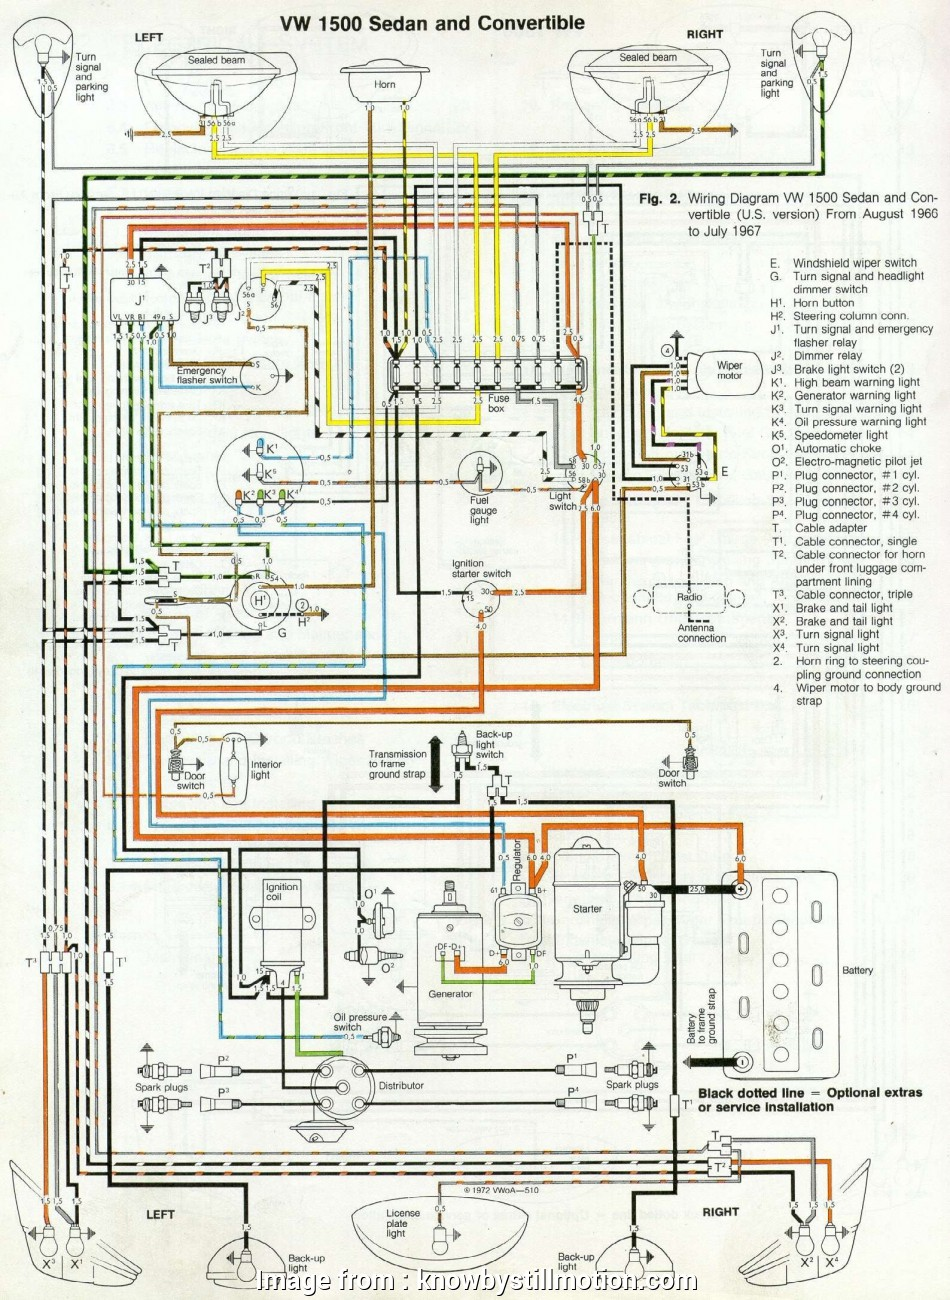 T5 Wiring Diagram from tonetastic.info